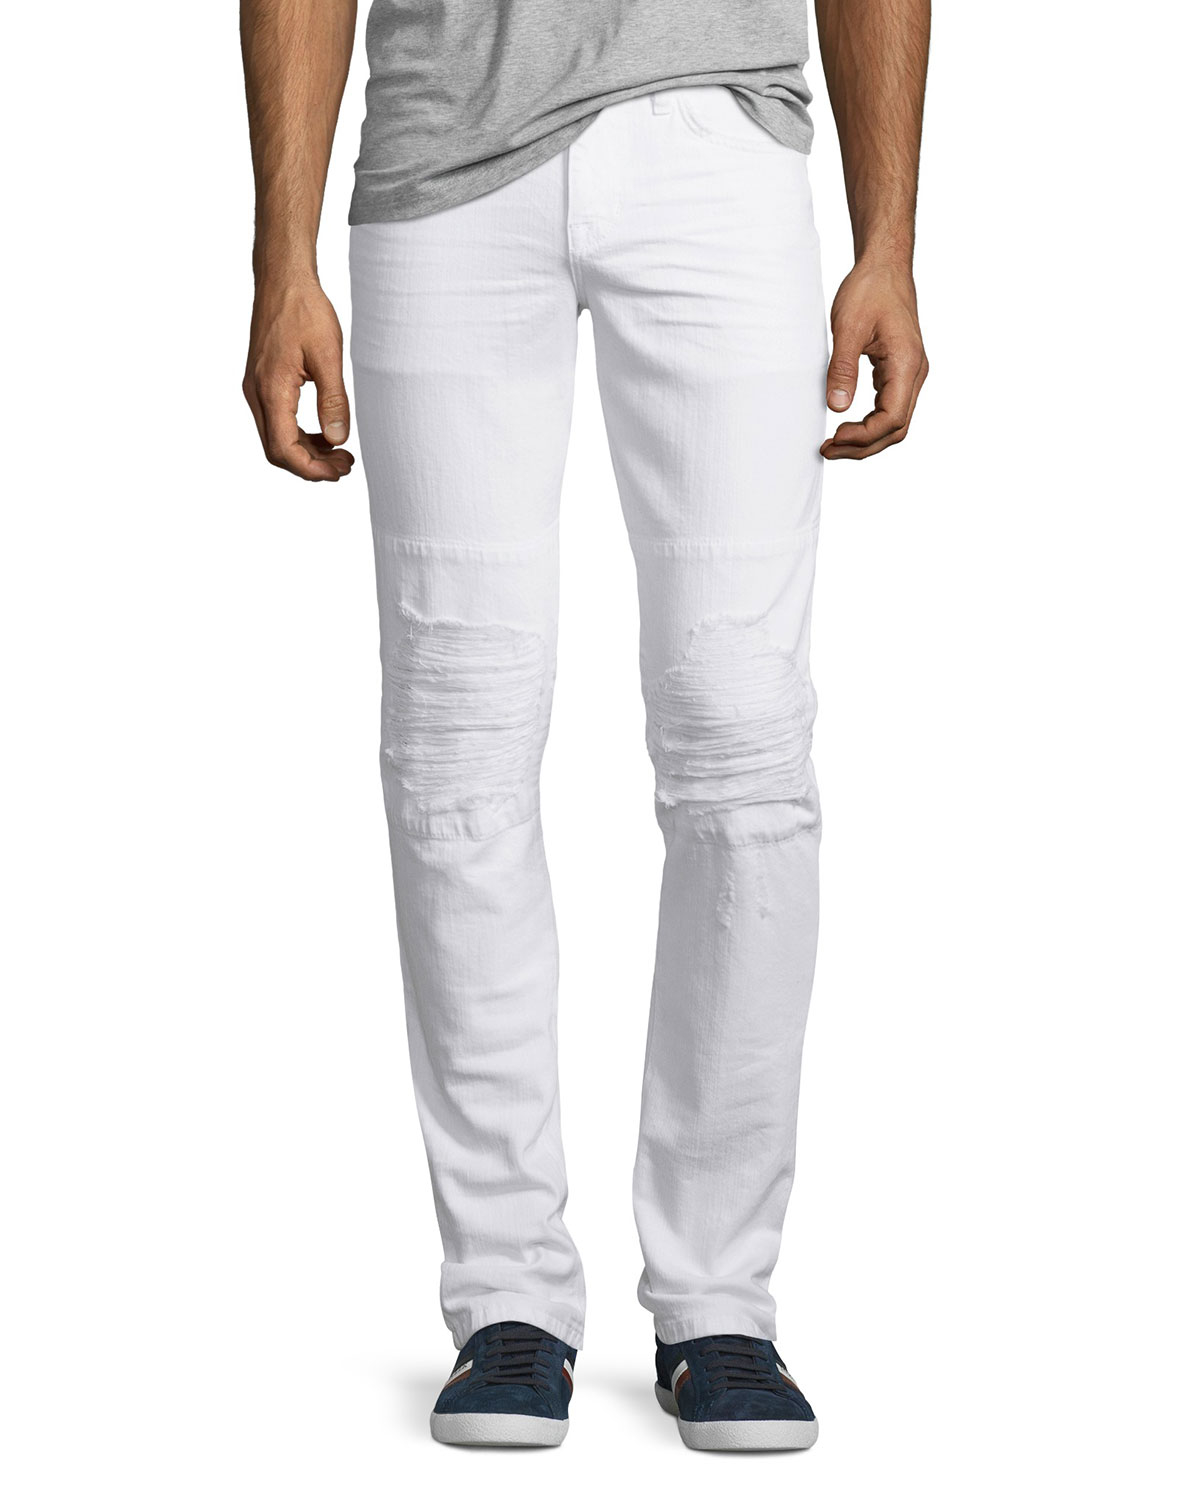 Men's Jeans Skinny Jeans Slim Fit Jeans Tapered Jeans Straight Jeans Bootcut Jeans Relaxed Fit Jeans Loose Fit Jeans Baggy Jeans Women's Jean Trends Ne(x)t Level Stretch Ripped Jeans Moto Jeans Patched Jeans Light Wash Jeans Medium Wash Jeans Dark Wash Jeans Acid Wash Jeans Black Jeans Colored Jeans Non Stretch Jeans.